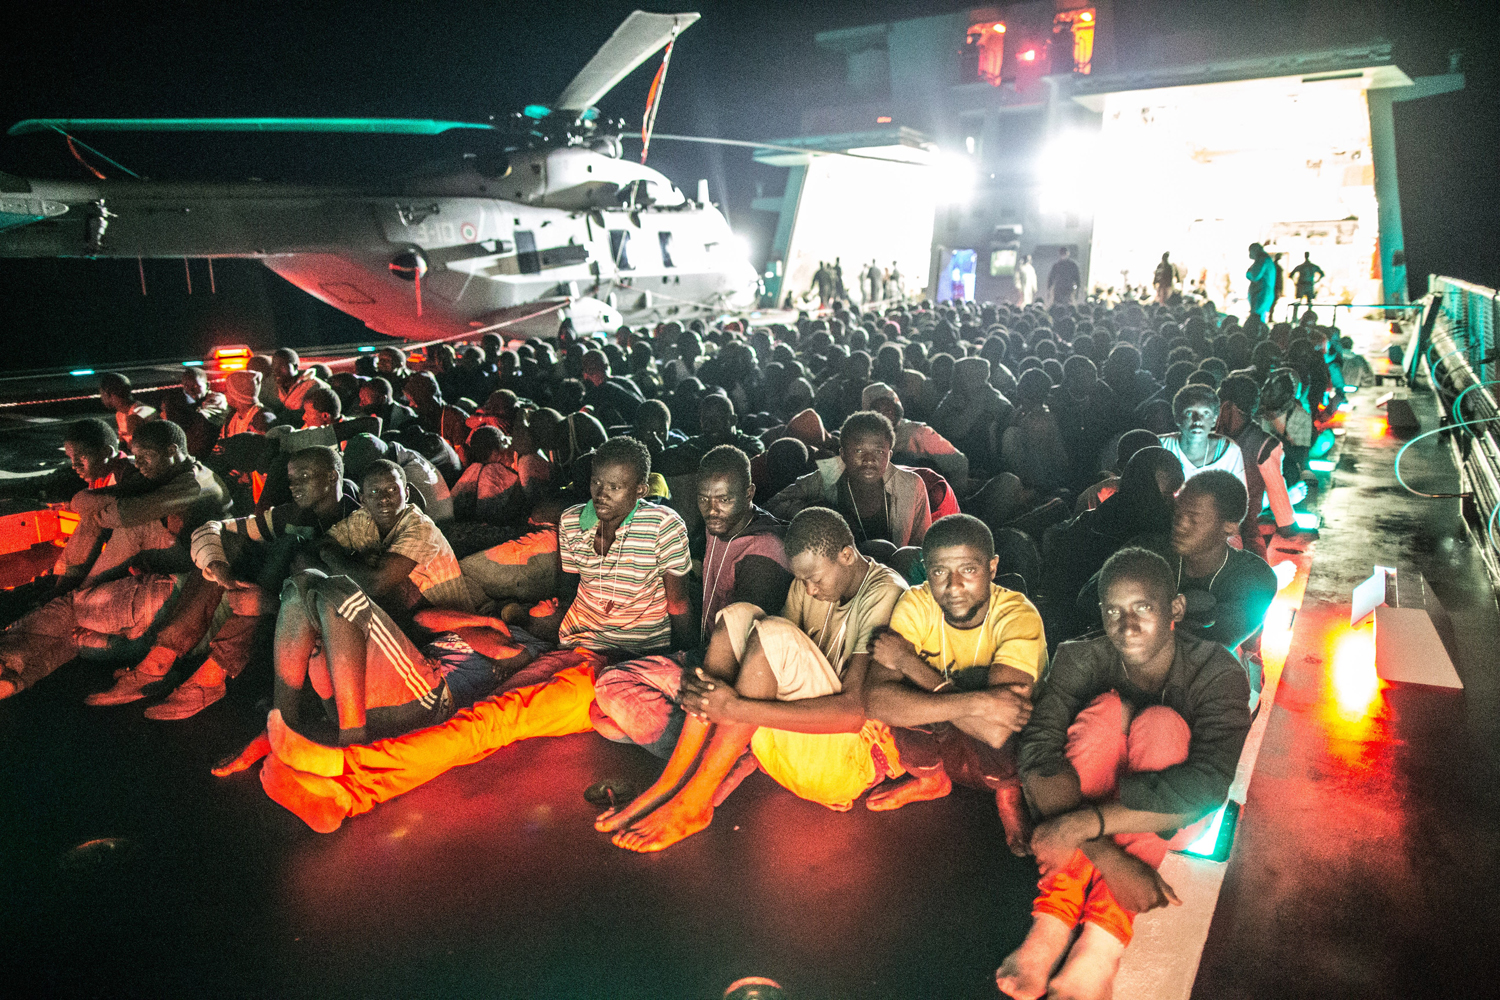 African asylum seekers rescued off boats and taken aboard an Italian navy ship, June 8, 2014.